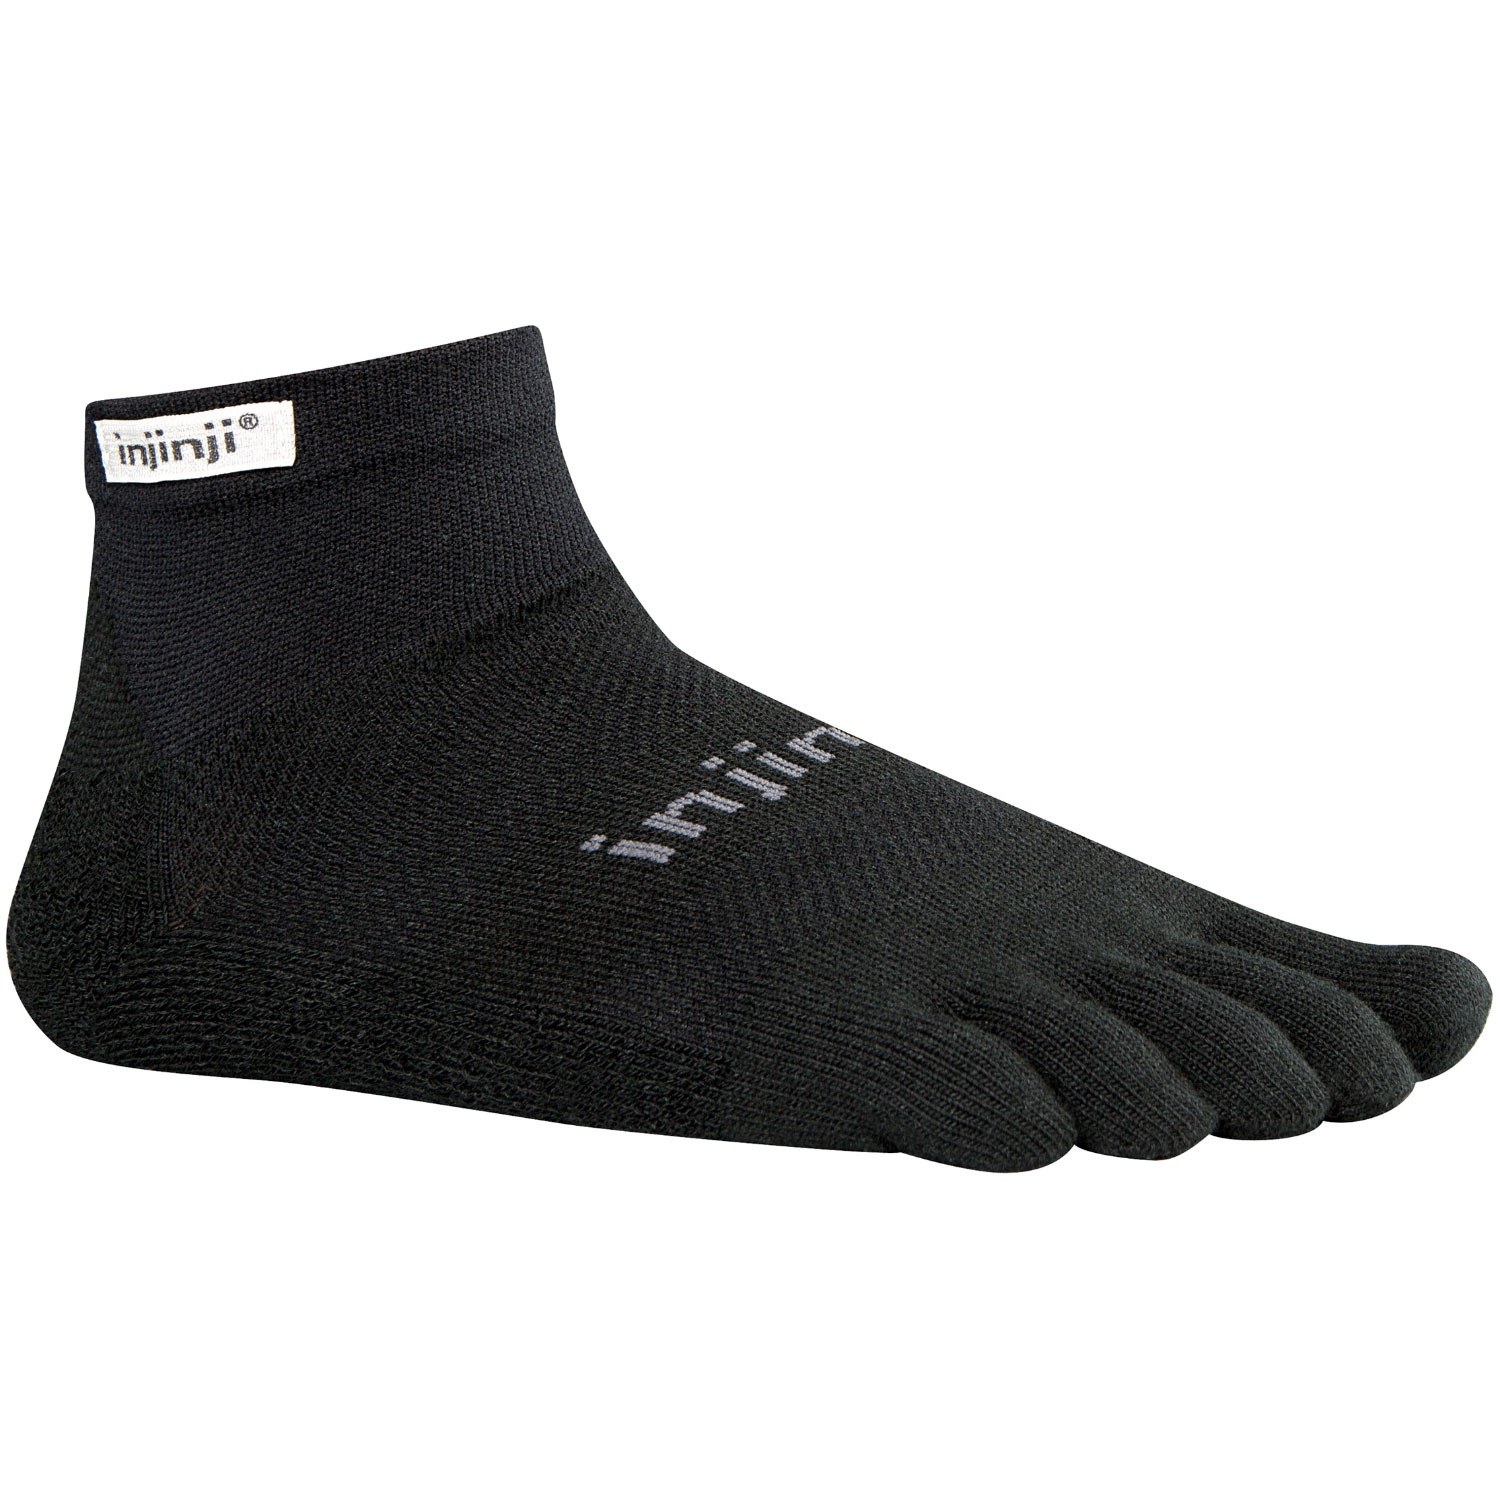 Injinji Run Lightweight Mini Crew Toe Socks - Black